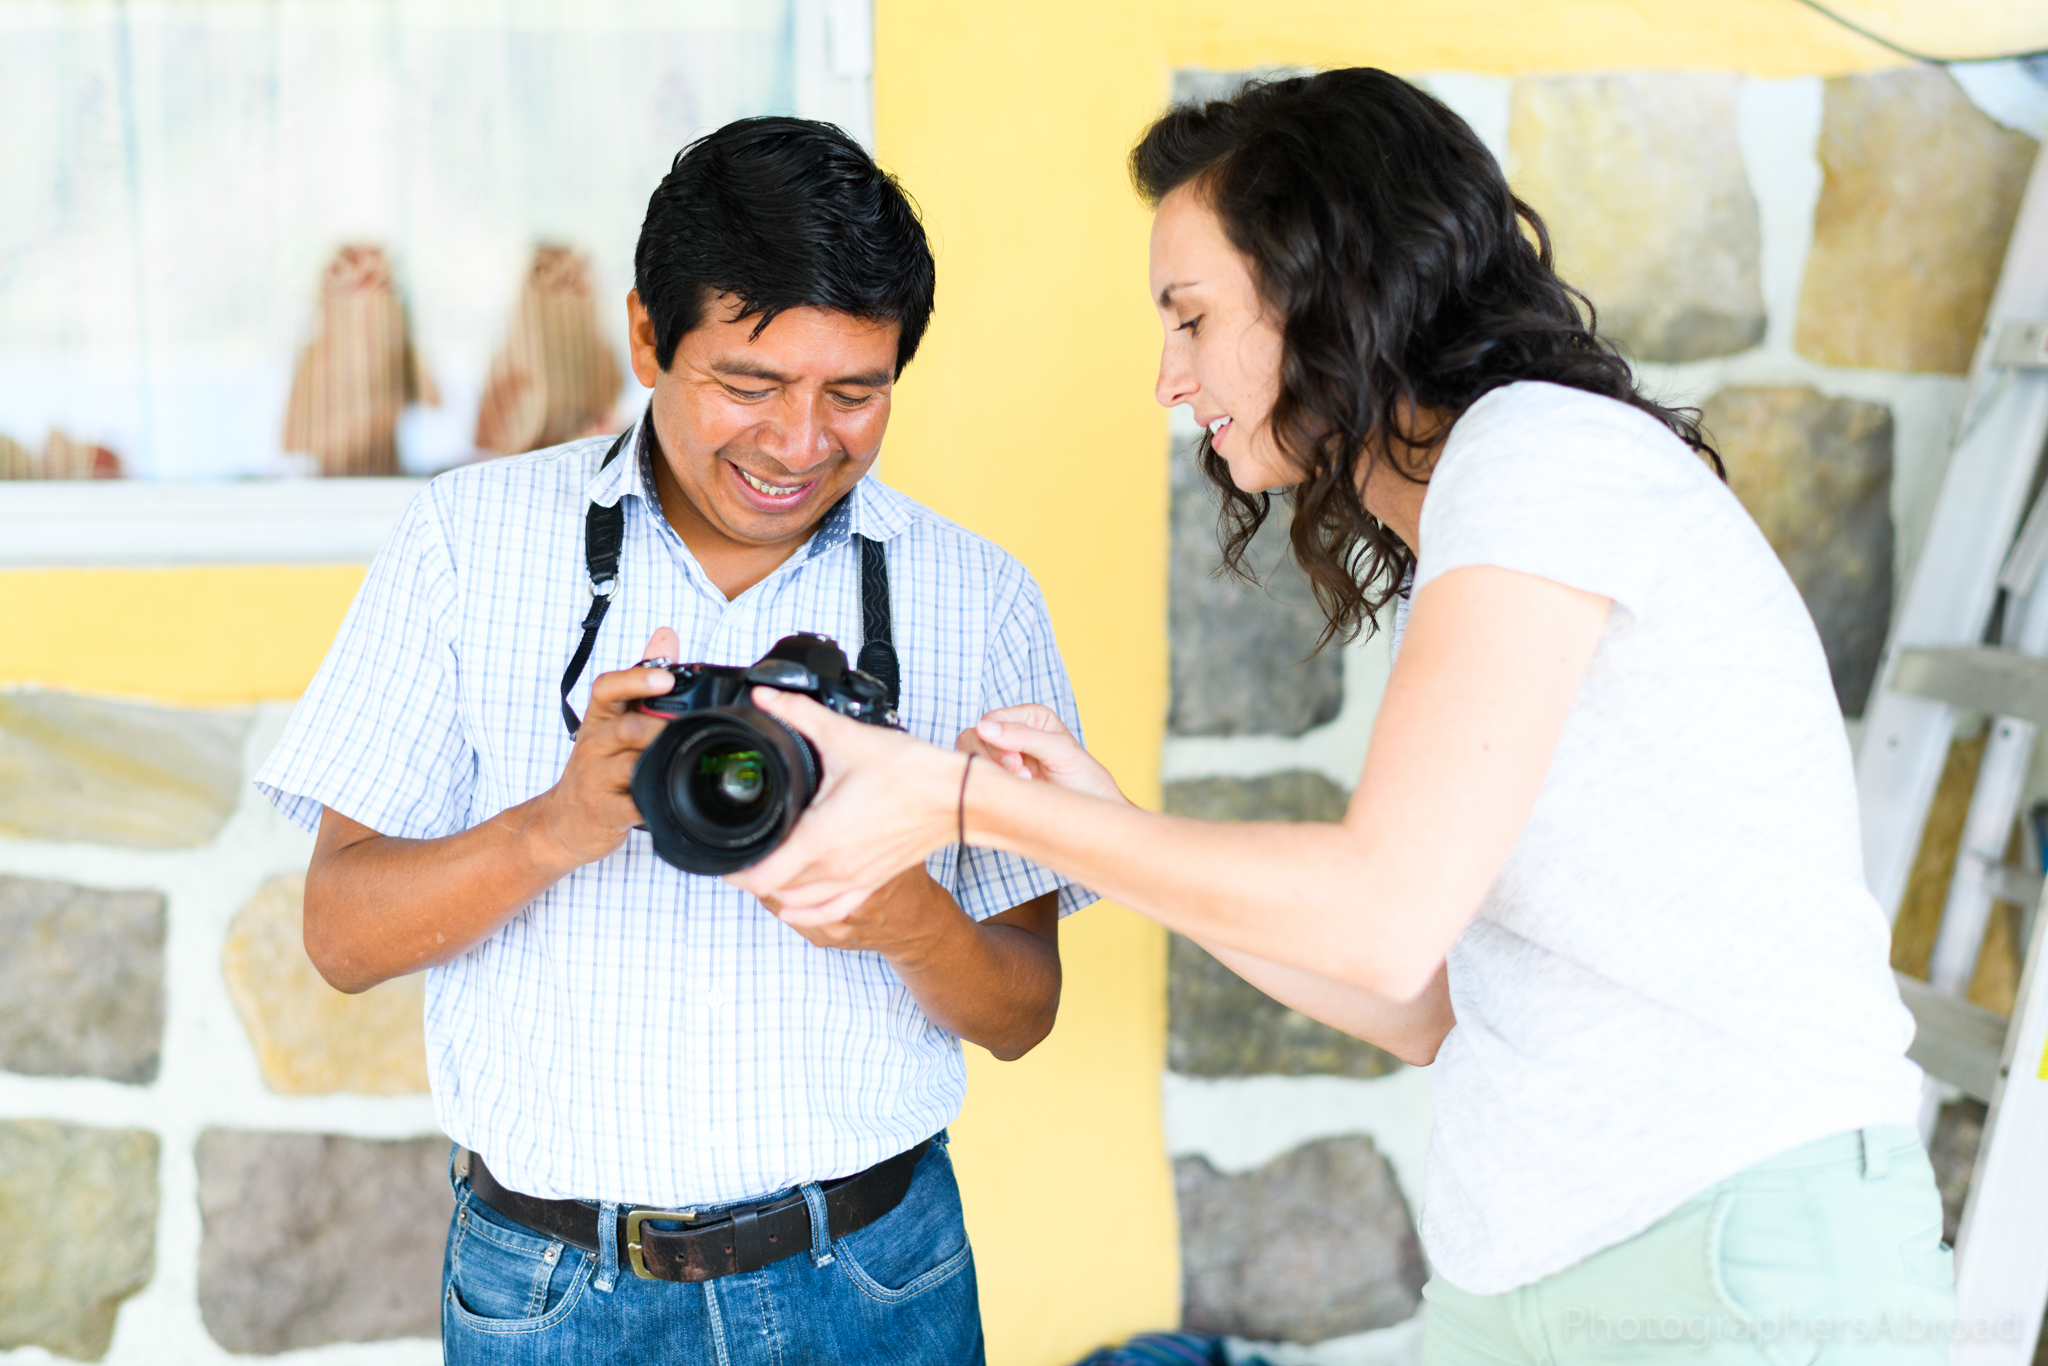 School director René is interested in photography - here, Molly shows him some settings on our cameras.